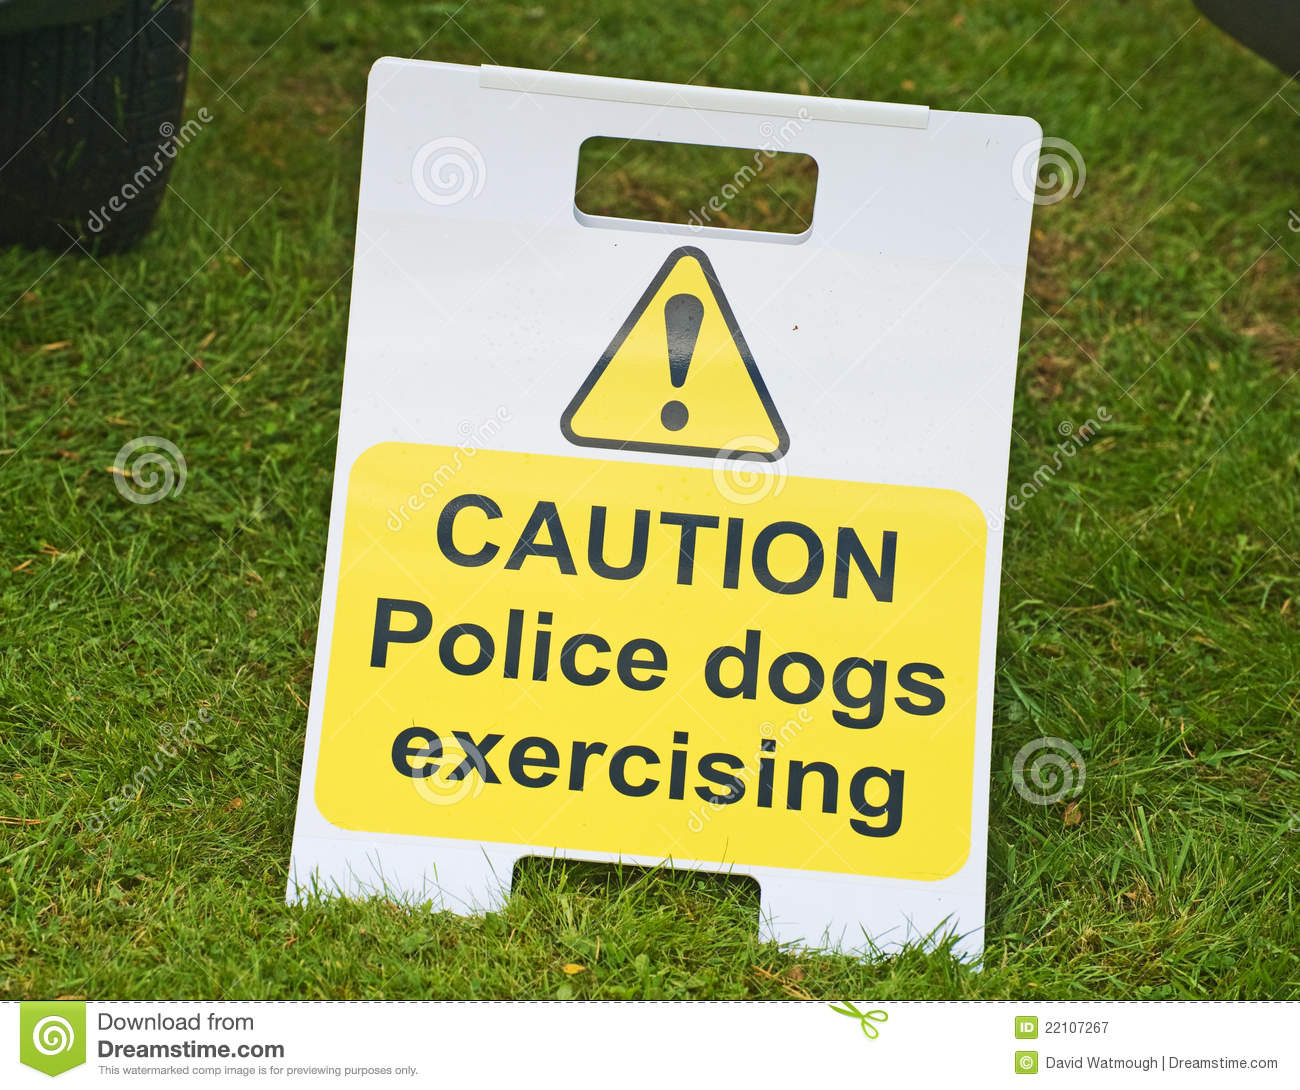 Warning about police dogs.